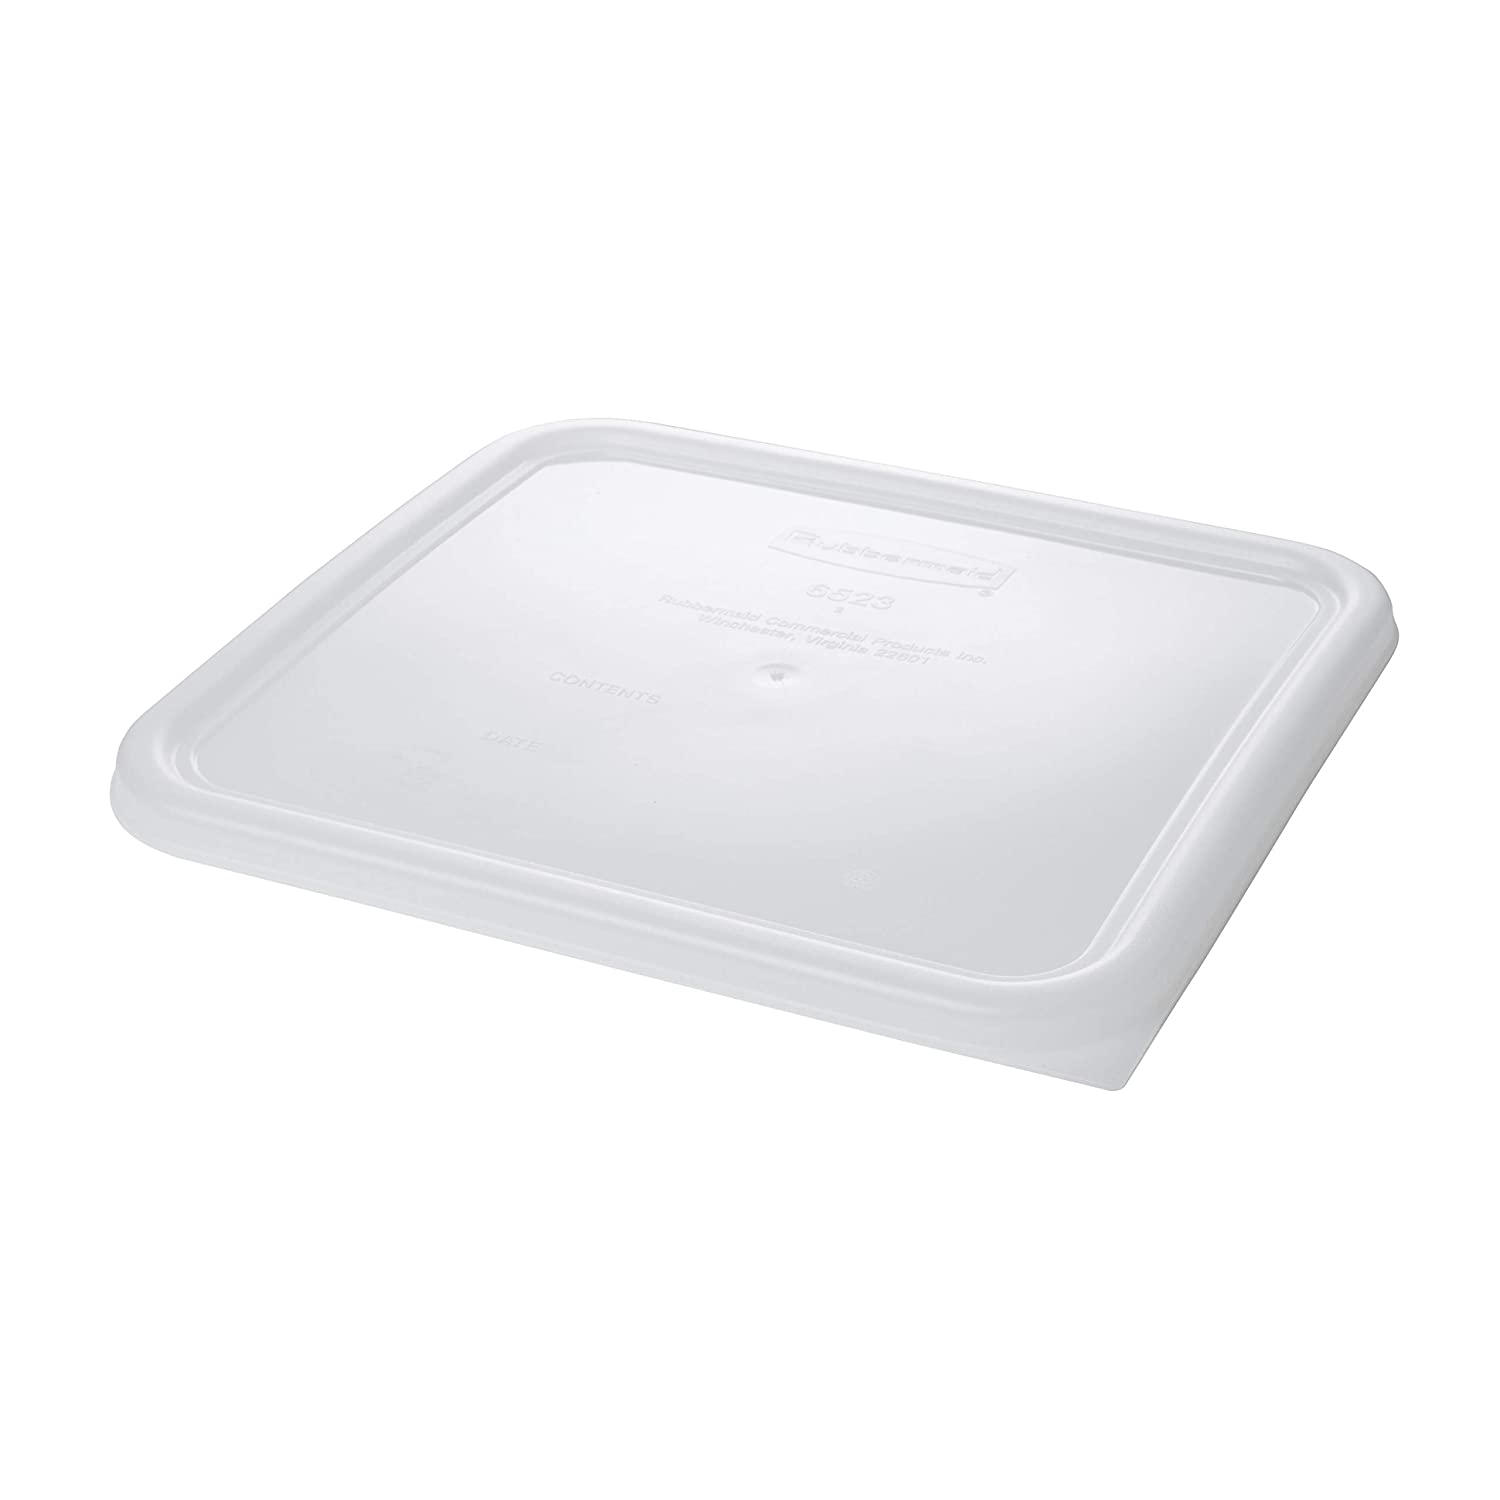 Rubbermaid Commercial Plastic Food Storage Container Lid, Square, White, 22 Quart, FG652300WHT